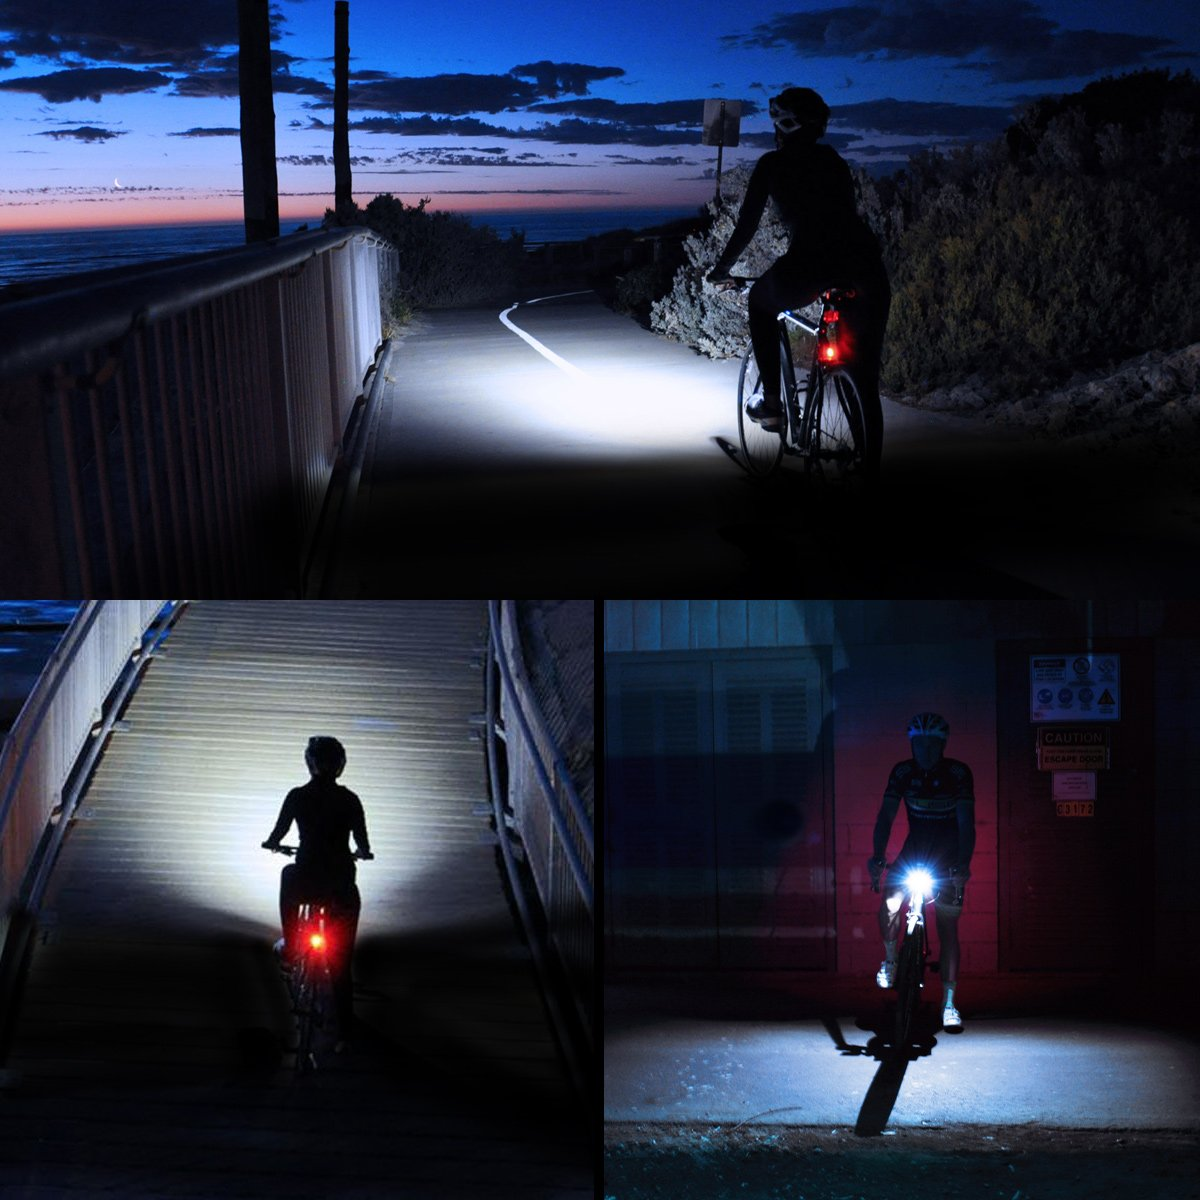 300lm Super Bright Bicycle Headlight Front Rear Light Set Cycling Taillight LE USB Rechargeable Bike Light Set 4 Lighting Modes